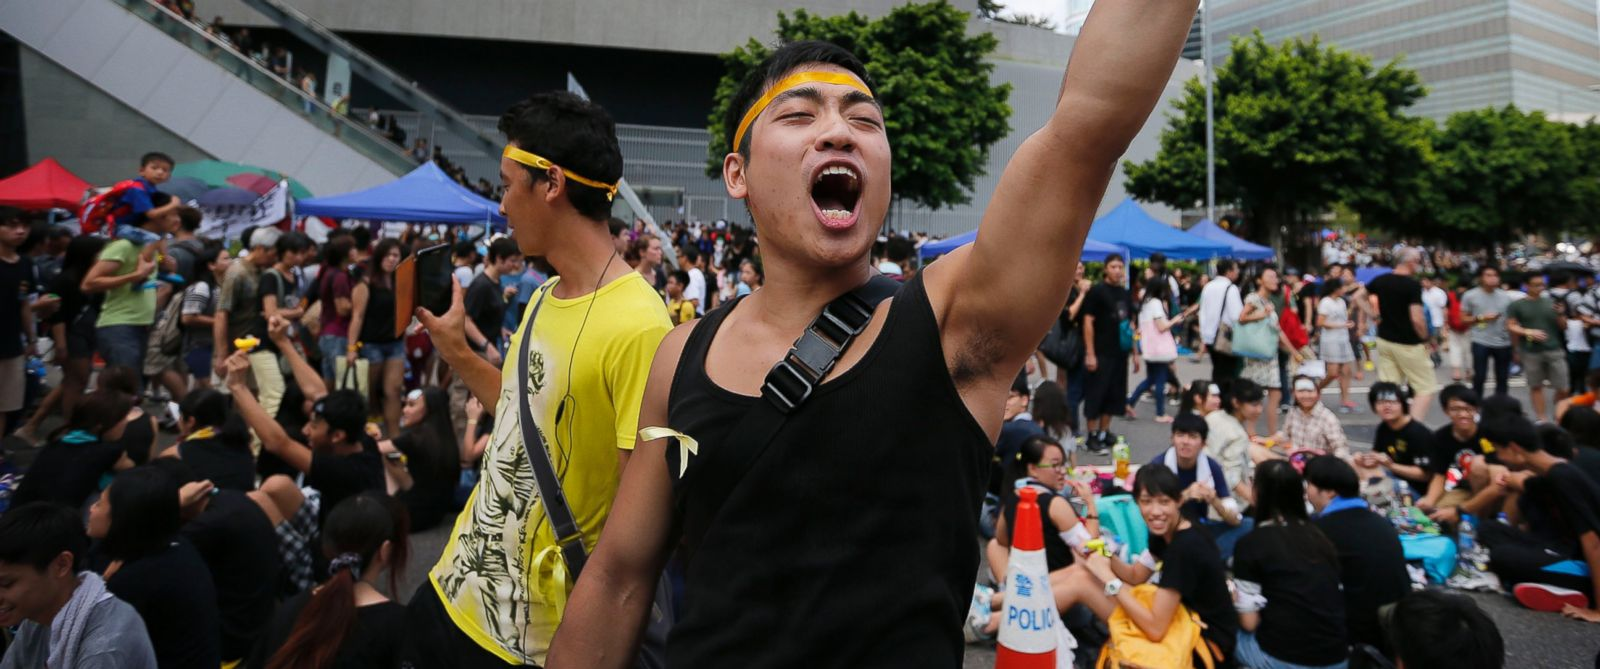 PHOTO: A pro-democracy activist shouts slogans on a street near the government headquarters where protesters have made camp, Oct. 1, 2014 in Hong Kong.